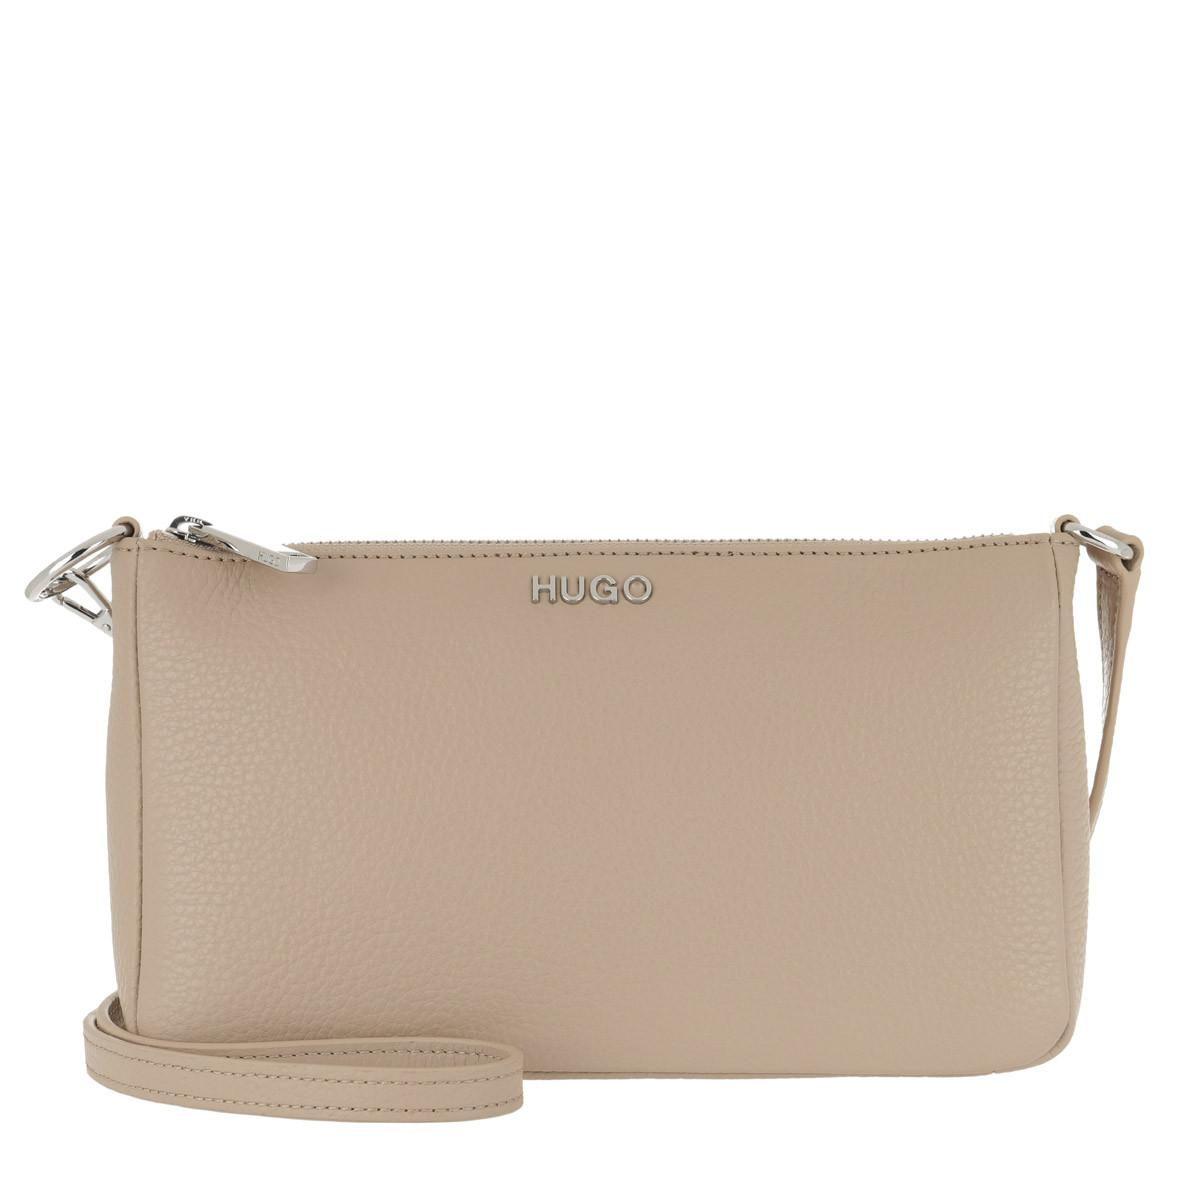 63e179b7702 HUGO Mayfair Mini Bag Light/pastel Brown in Natural - Lyst